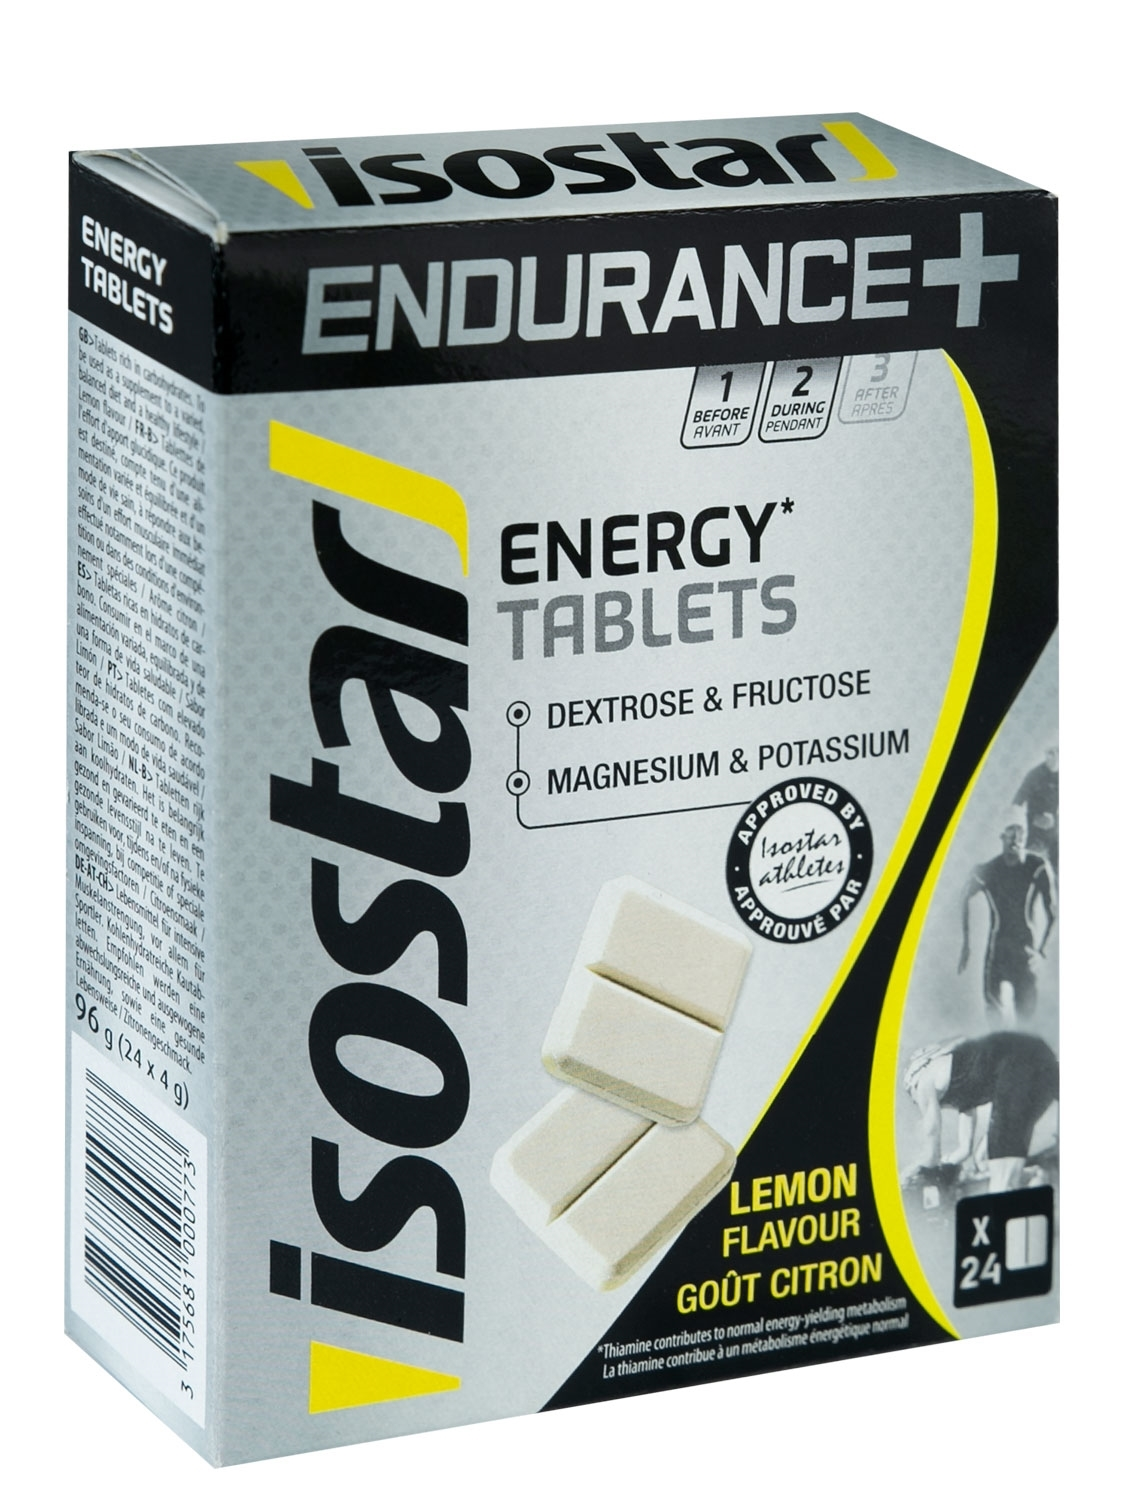 ISOSTAR ENERGY ENDURANCE+ tablety 24x 4 g citron